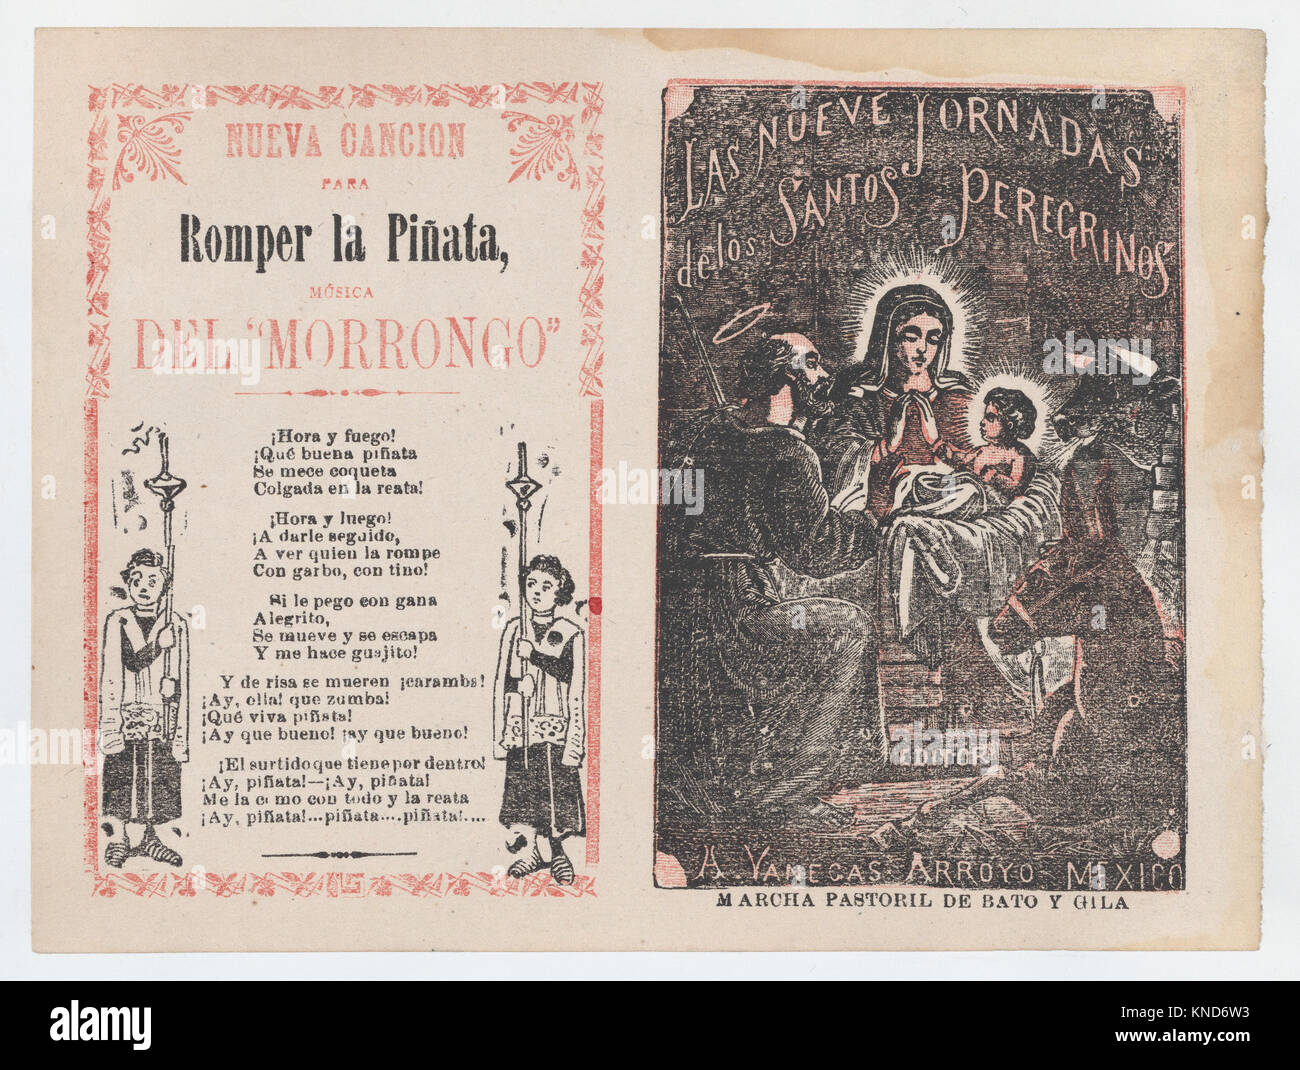 Cover for 'Las Nueve Jornadas de los Santos Peregrinos', Holy Family in the manger MET DP868376 Cover for - Stock Image